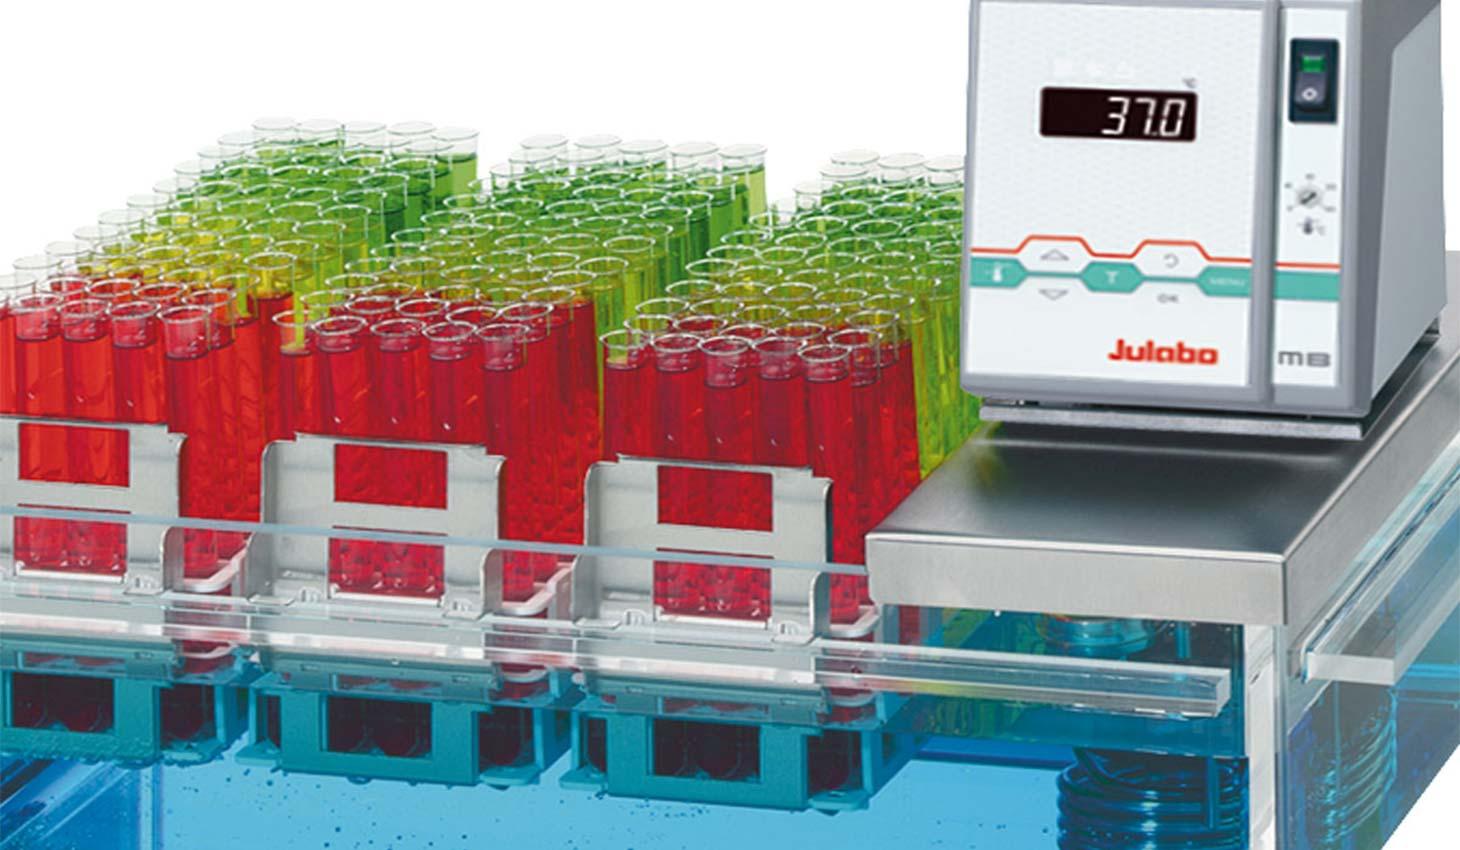 racks of test tubes filled with green and red liquid, raised above a Julabo polycarbonate bath with temperature controller